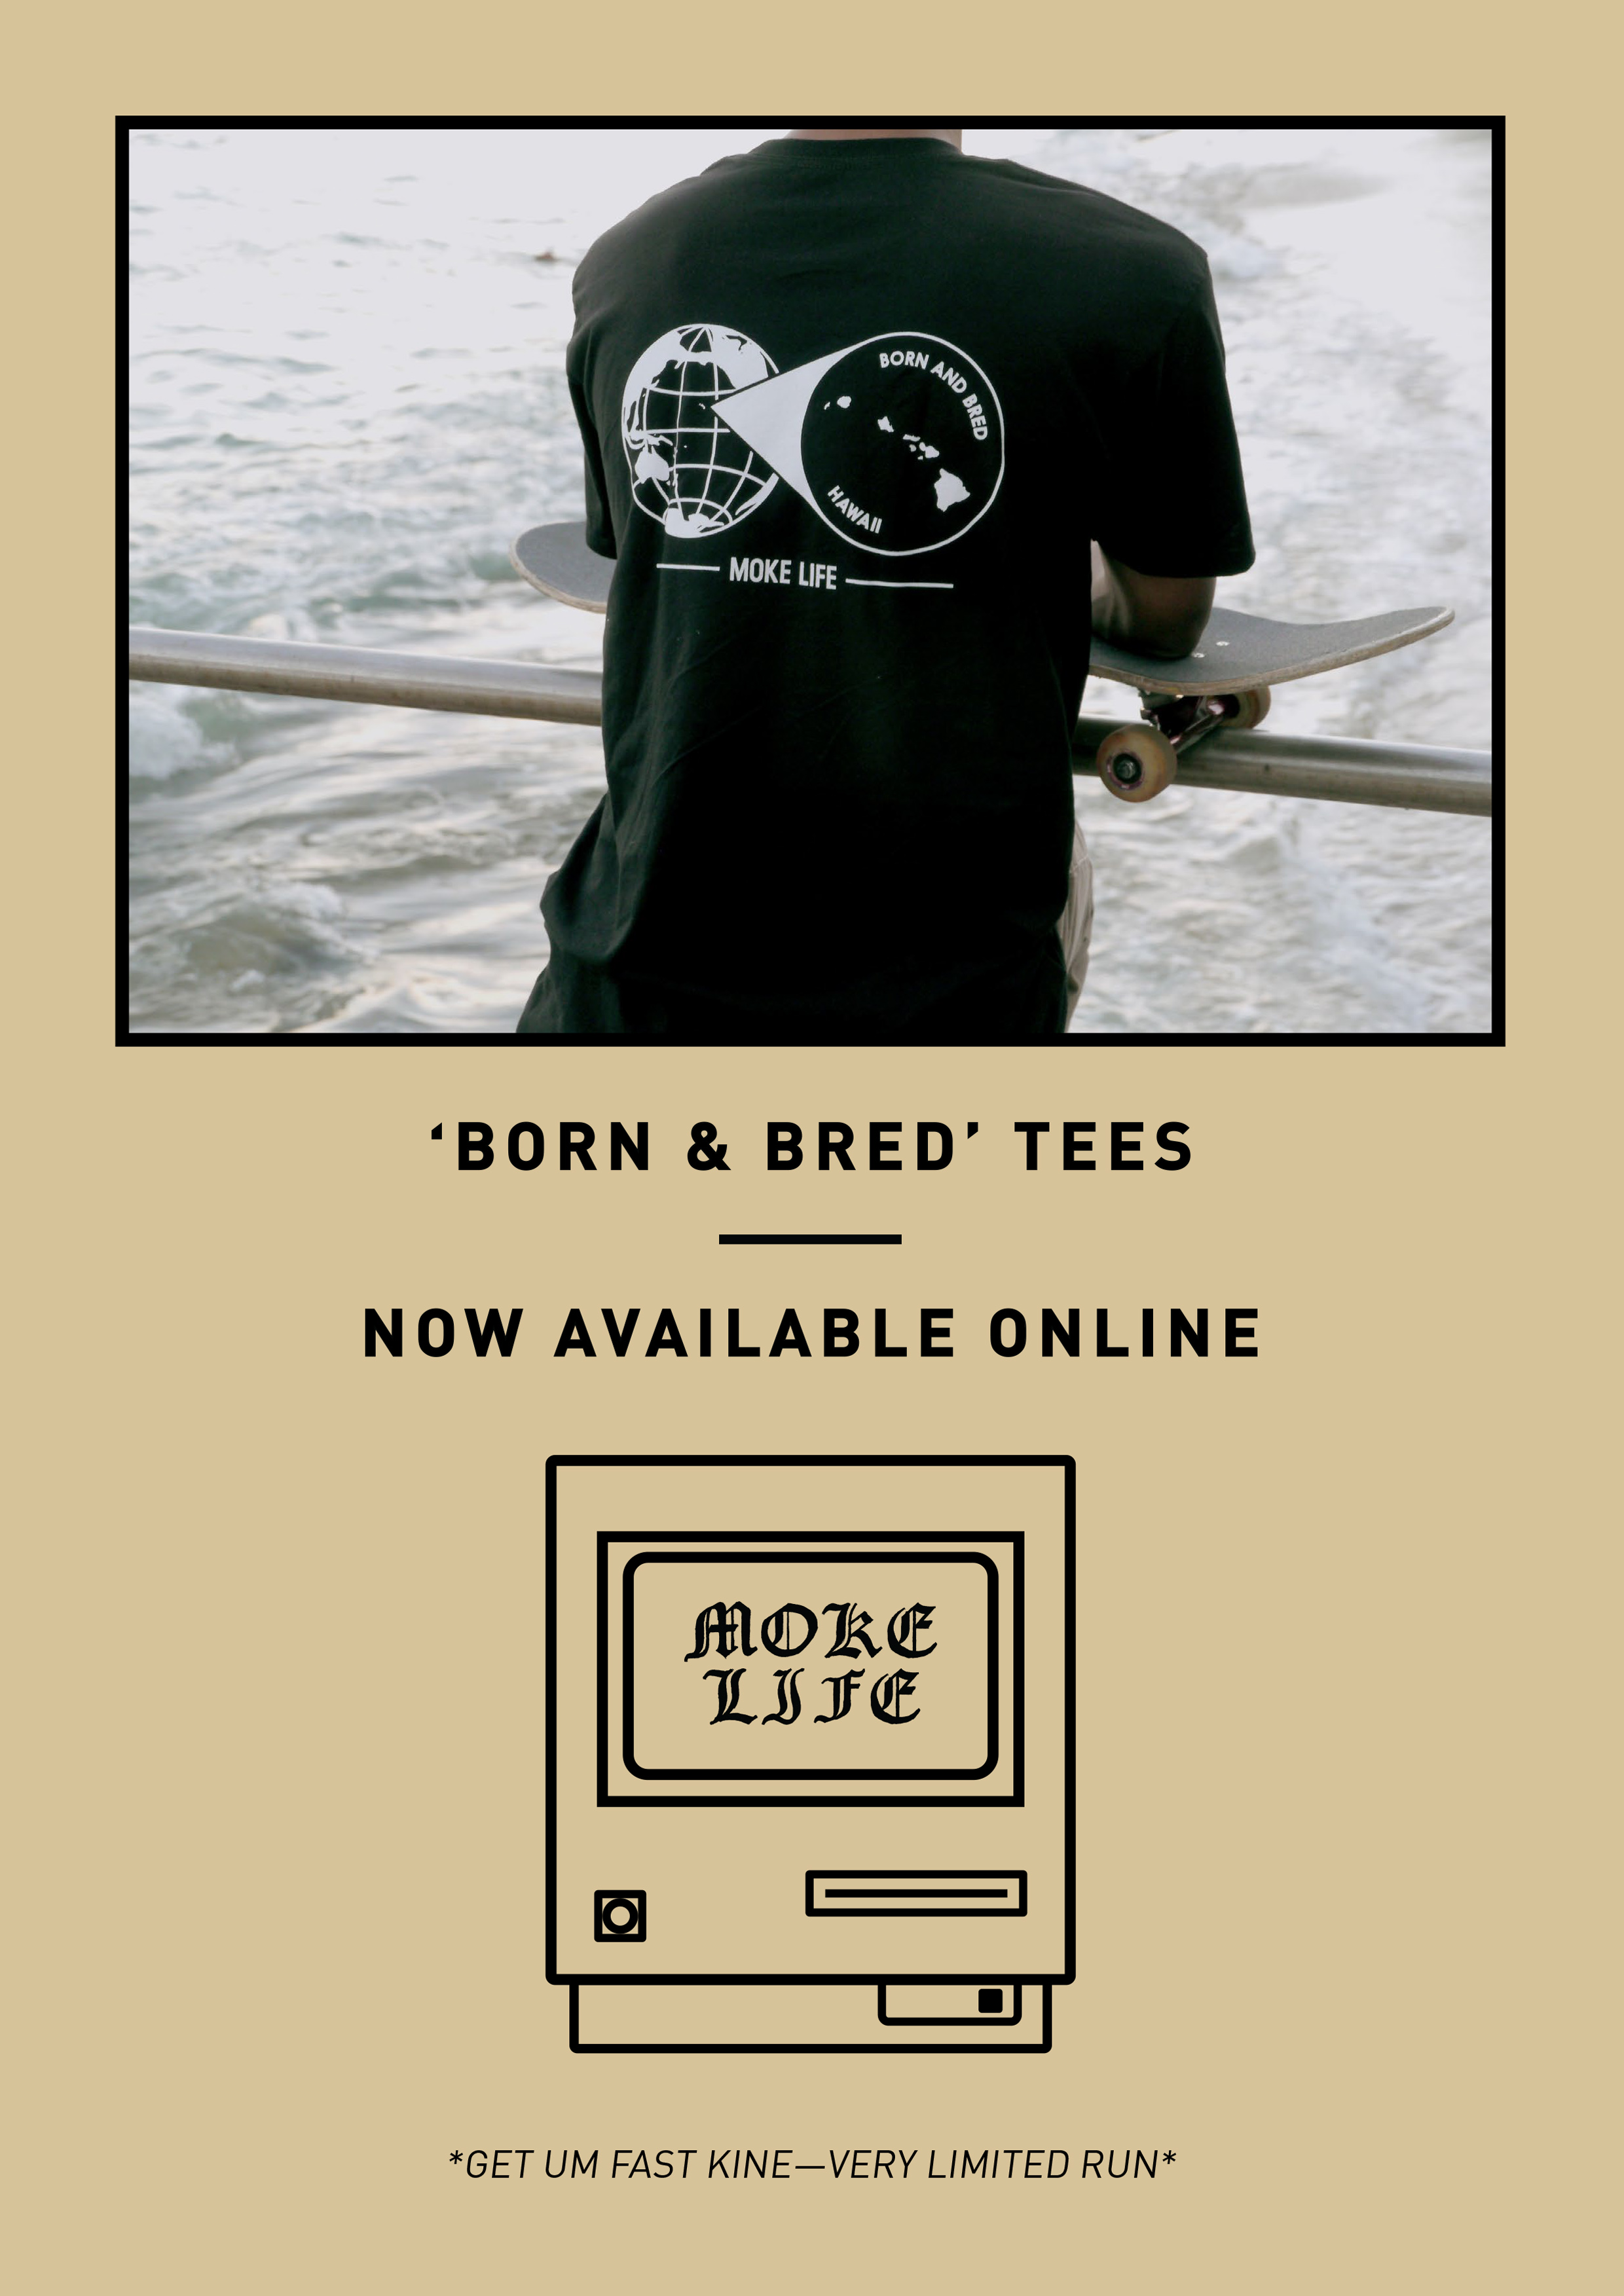 We have officially opened shop! 'Born and Bred' tees are now available for purchase. Grab dat fast kine—limited stock.